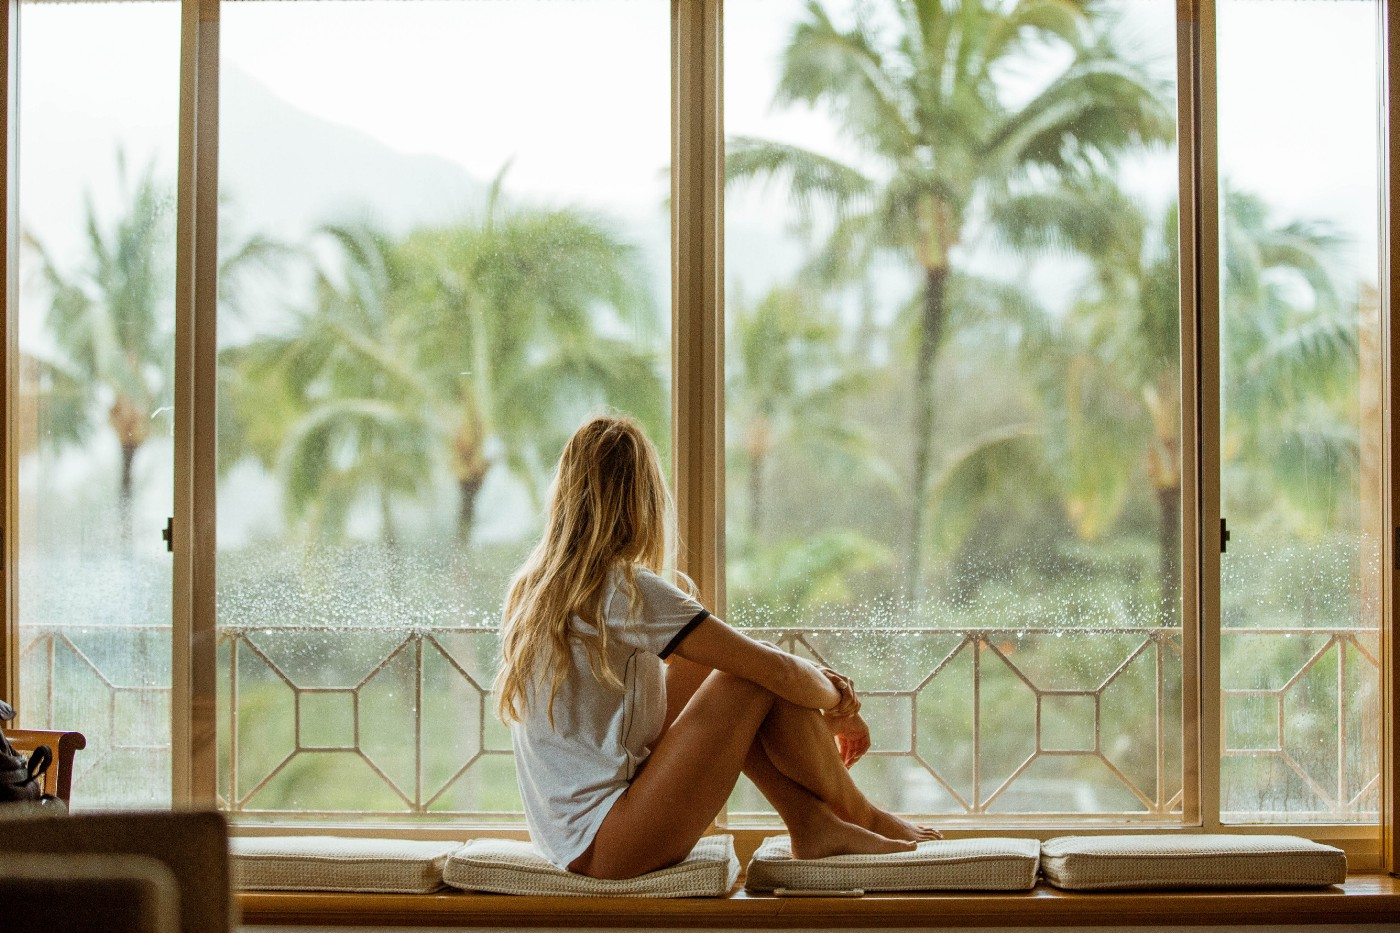 Girl sits by a window looking at a hot, tropical view.